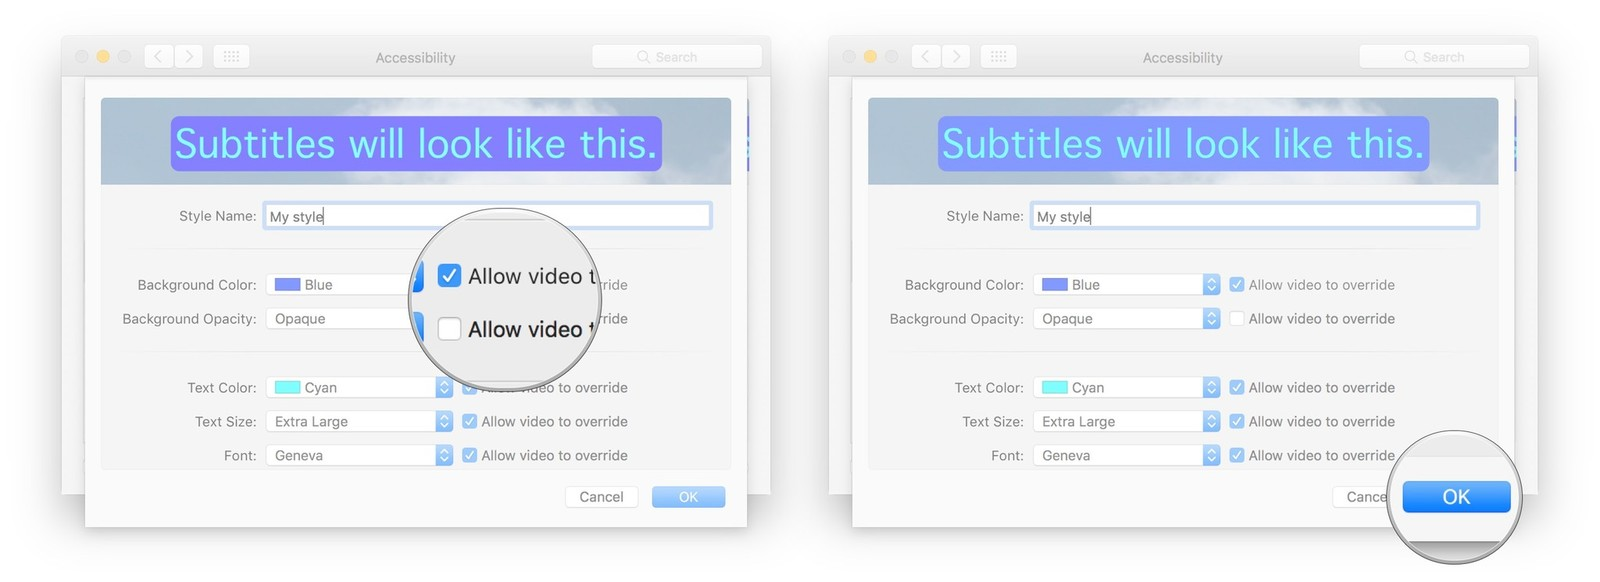 Click the checkbox to allow video to override the setting, click OK when finished